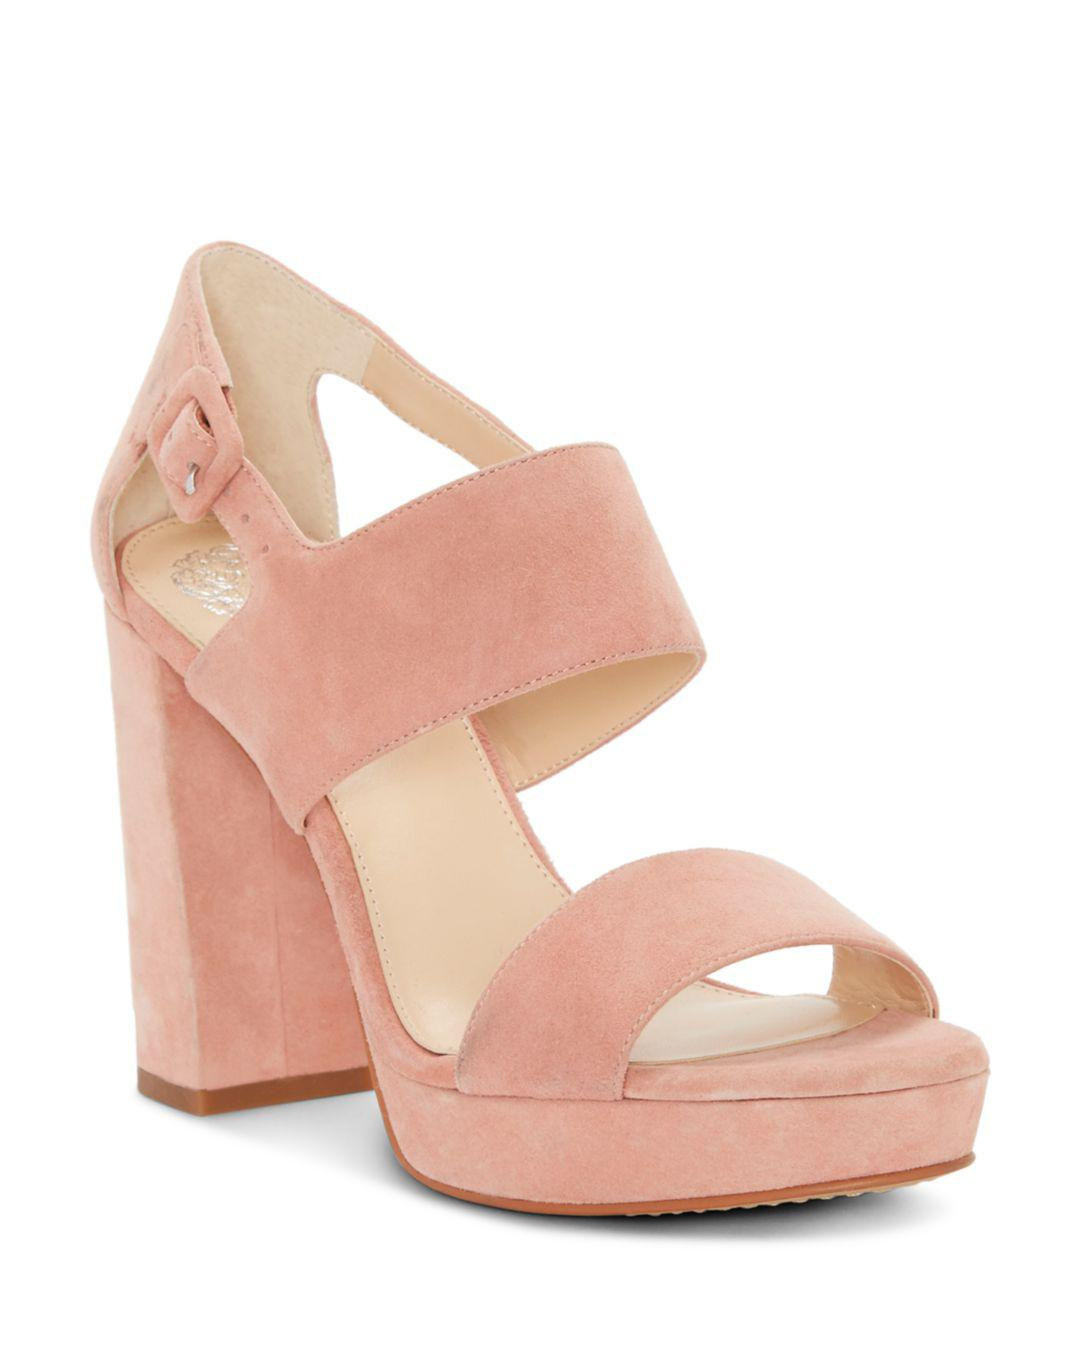 e1b682b07ac Lyst - Vince Camuto Women s Jayvid Suede Platform Sandals in Pink ...